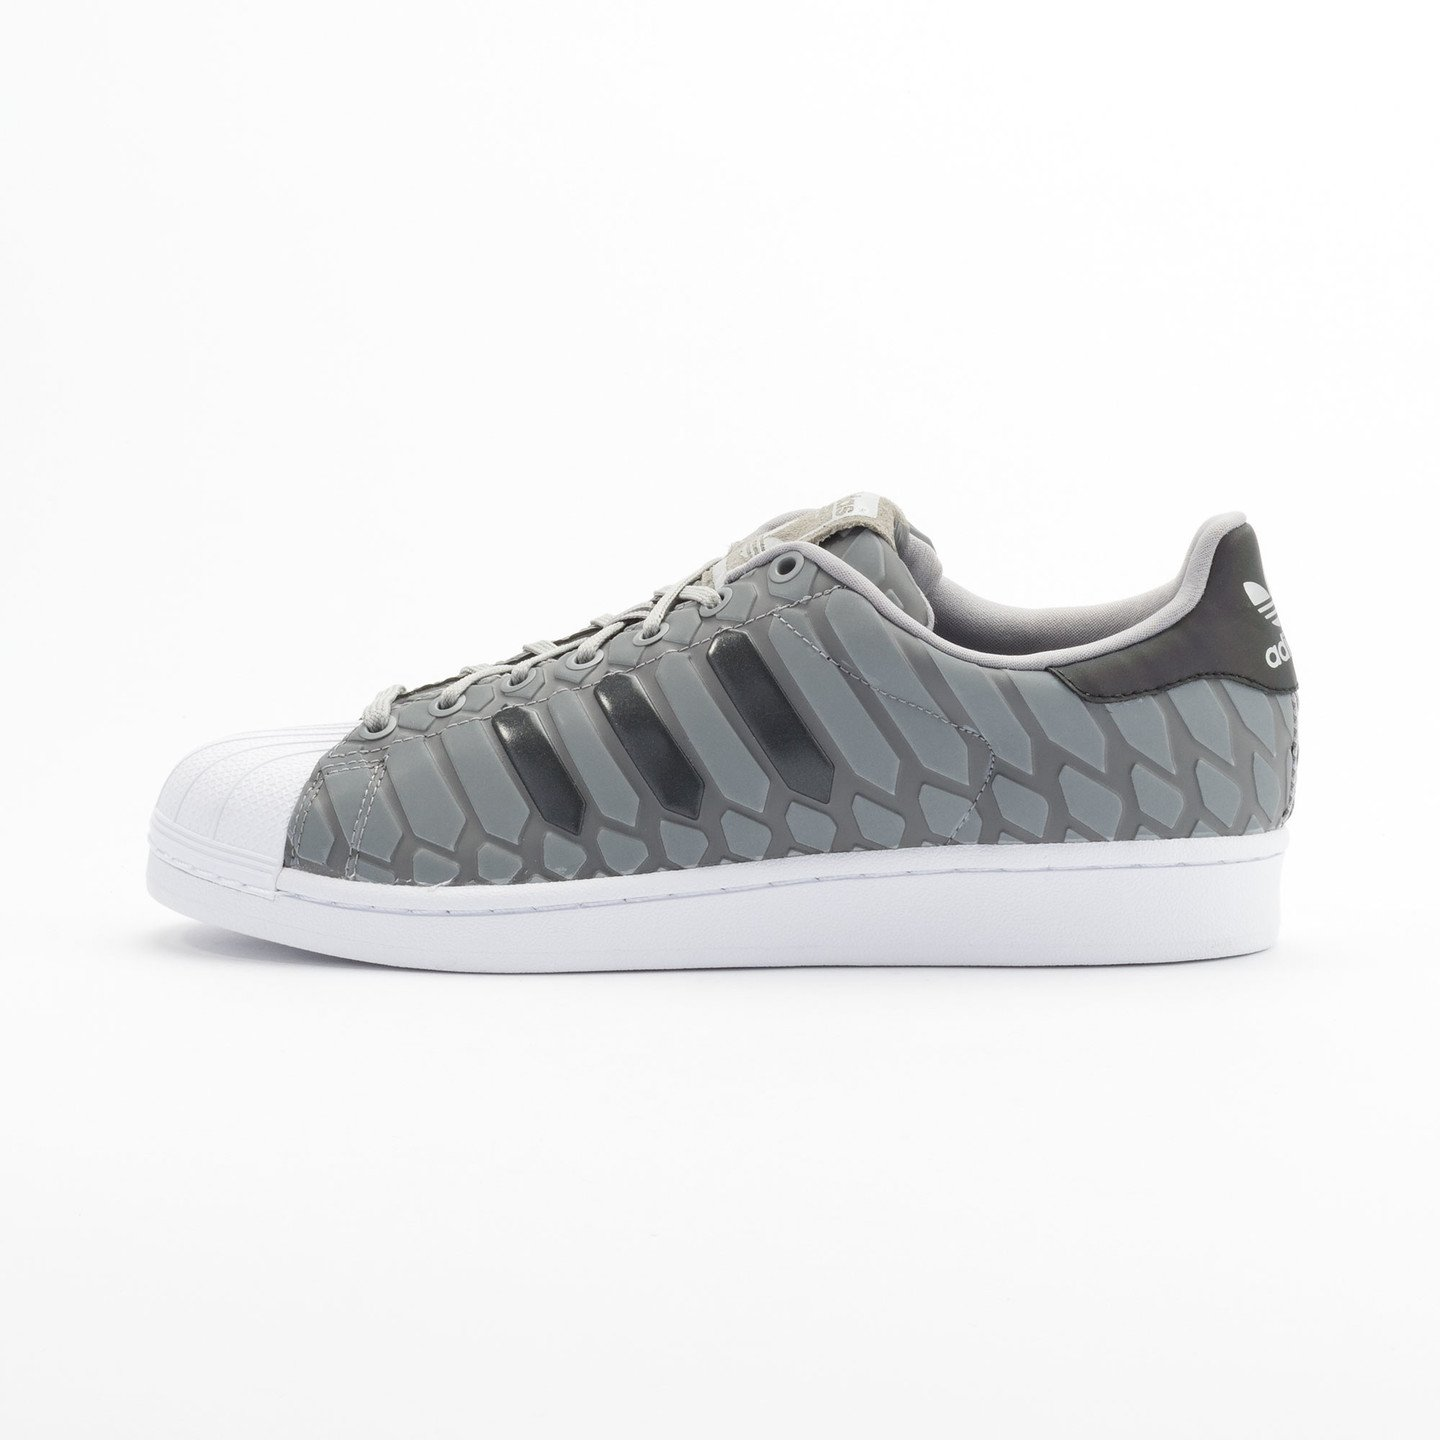 Adidas Superstar Xeno Pack Ltonix / Supcol / Ftwwht D69367-44.66